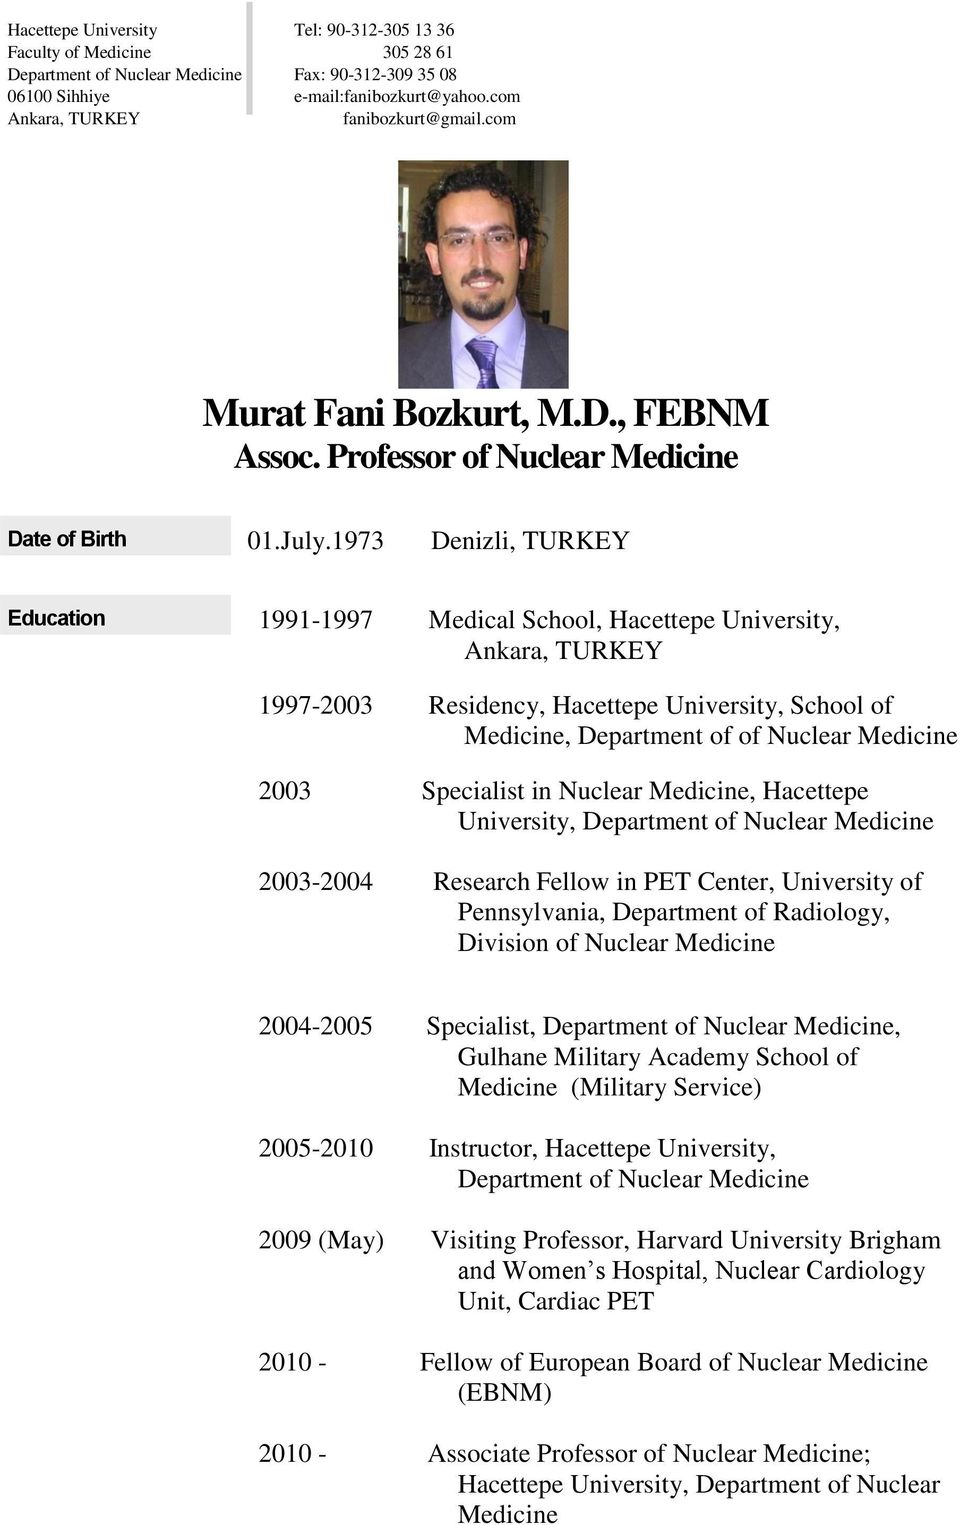 1973 Denizli, TURKEY Education 1991-1997 Medical School, Hacettepe University, Ankara, TURKEY 1997-2003 Residency, Hacettepe University, School of Medicine, Department of of Nuclear Medicine 2003